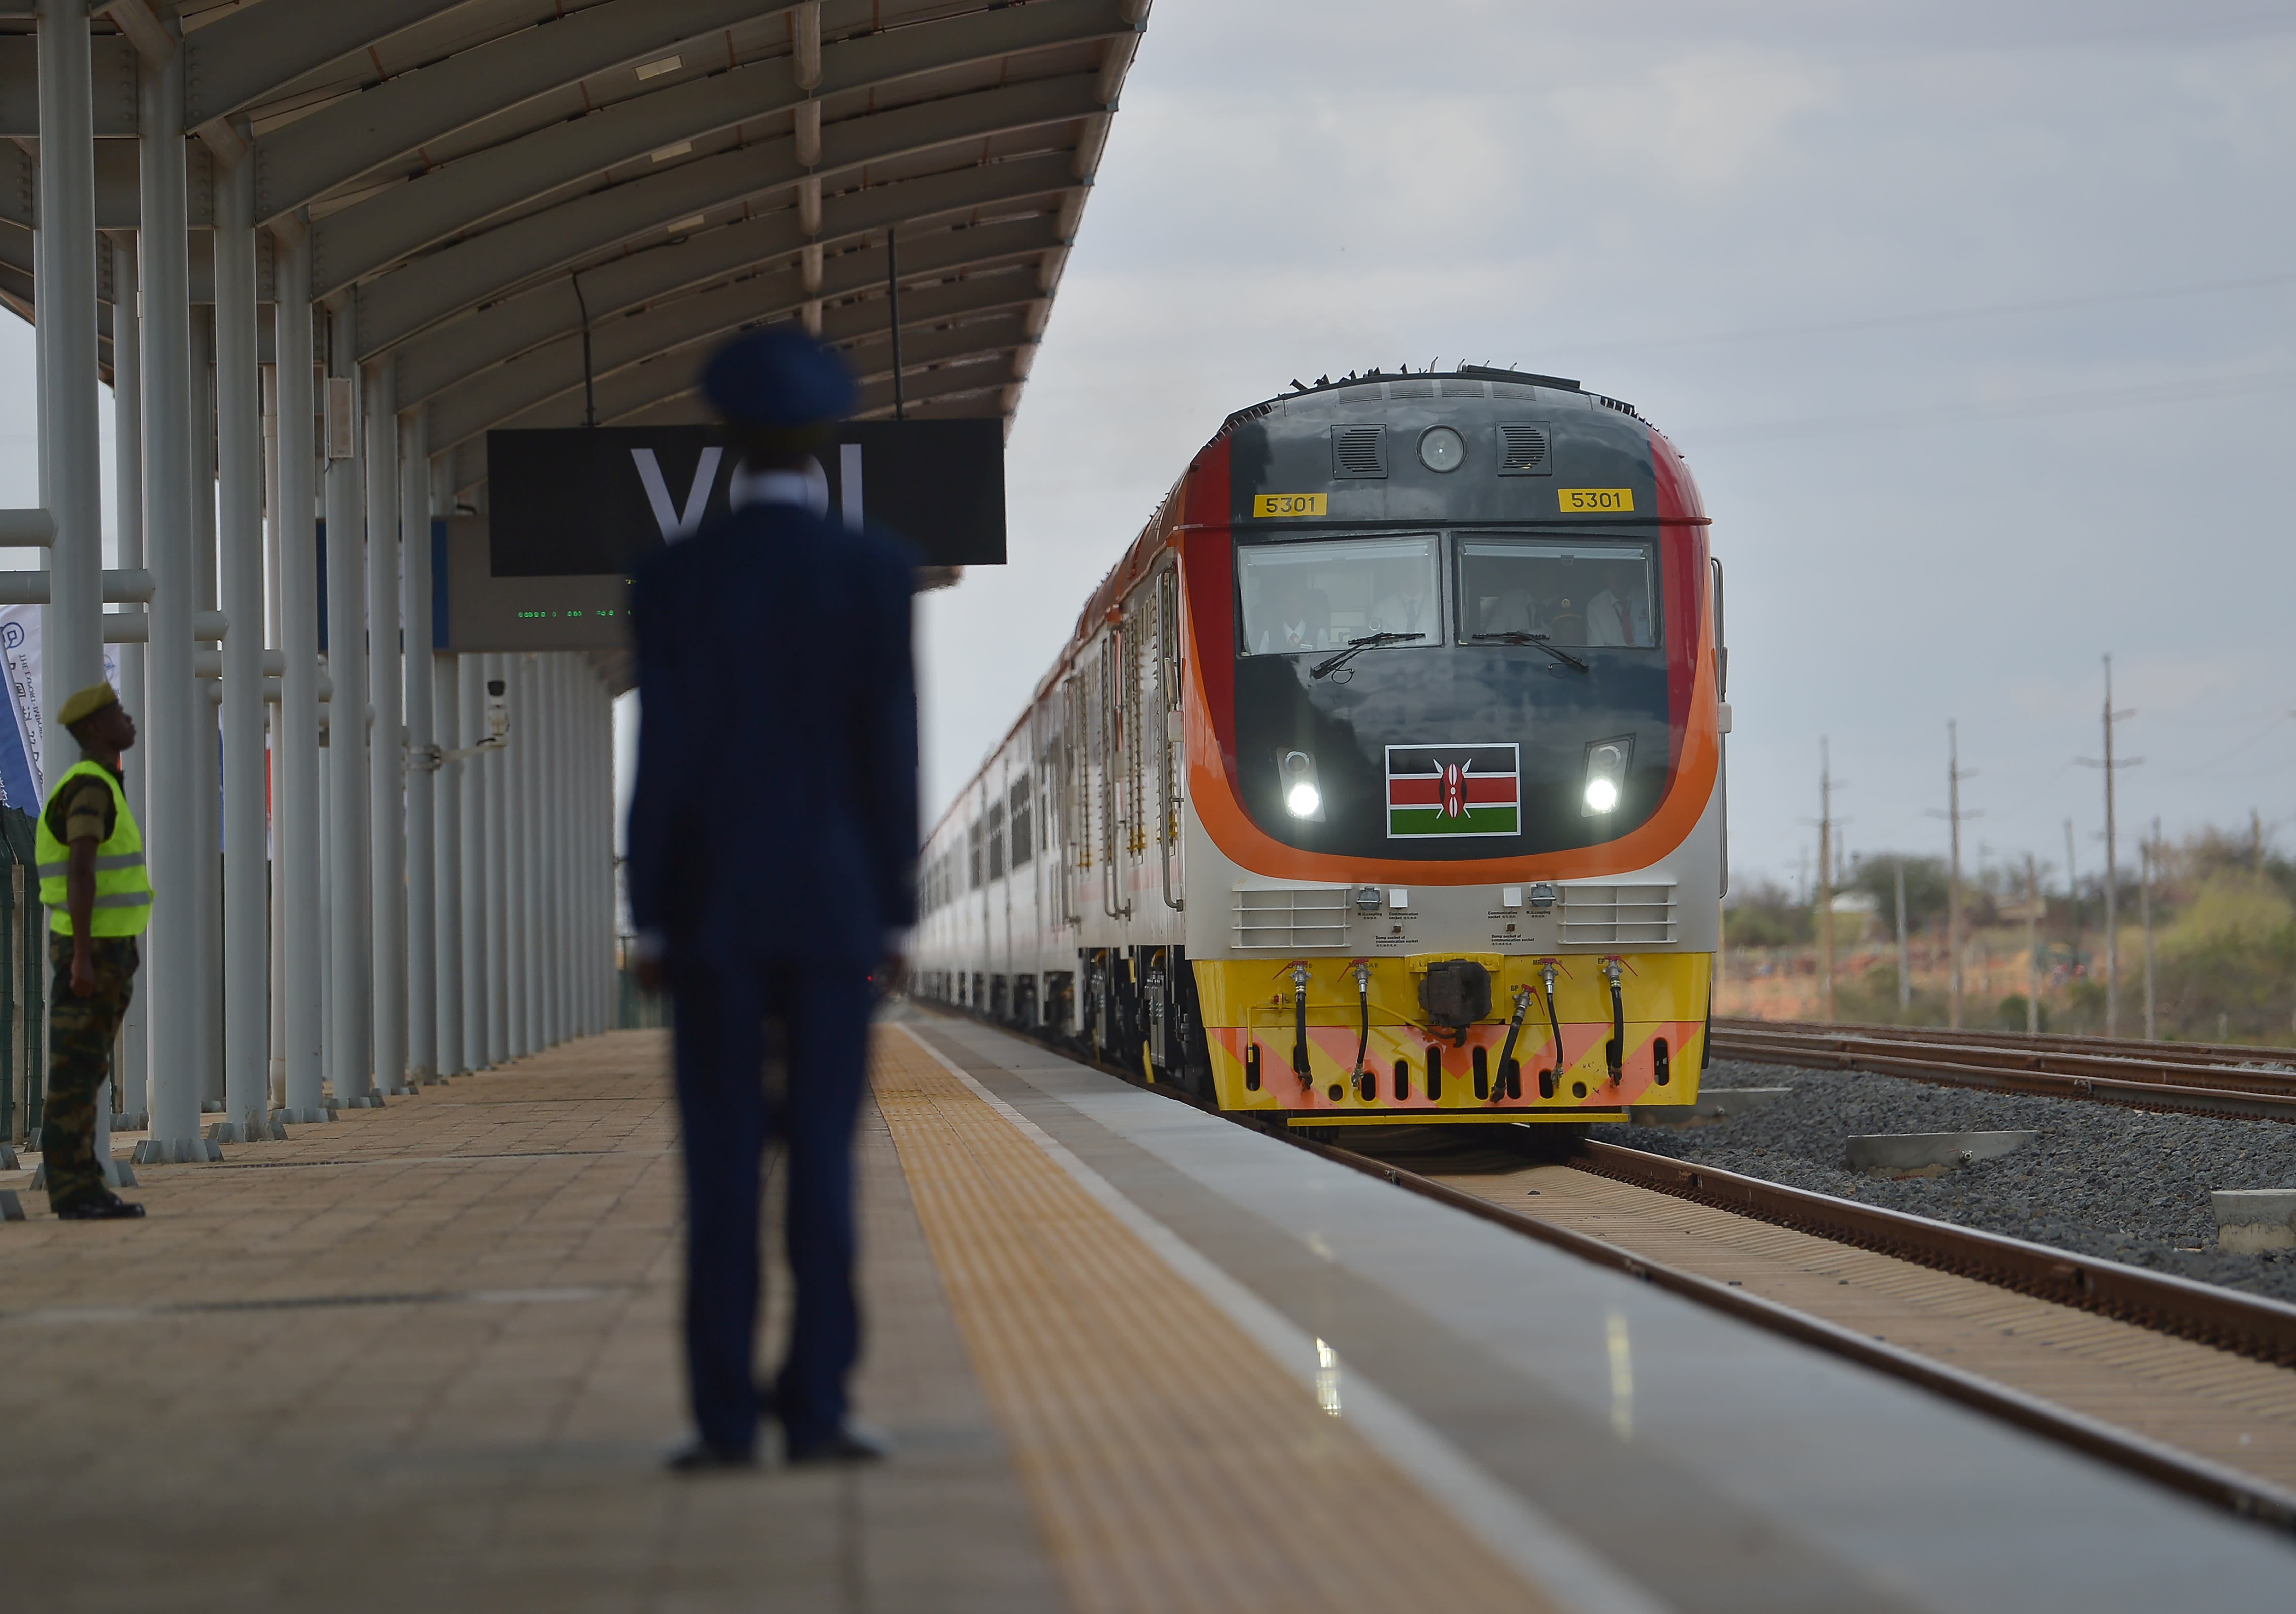 Kenya forcing importers to use costly new Chinese railway, businessmen say